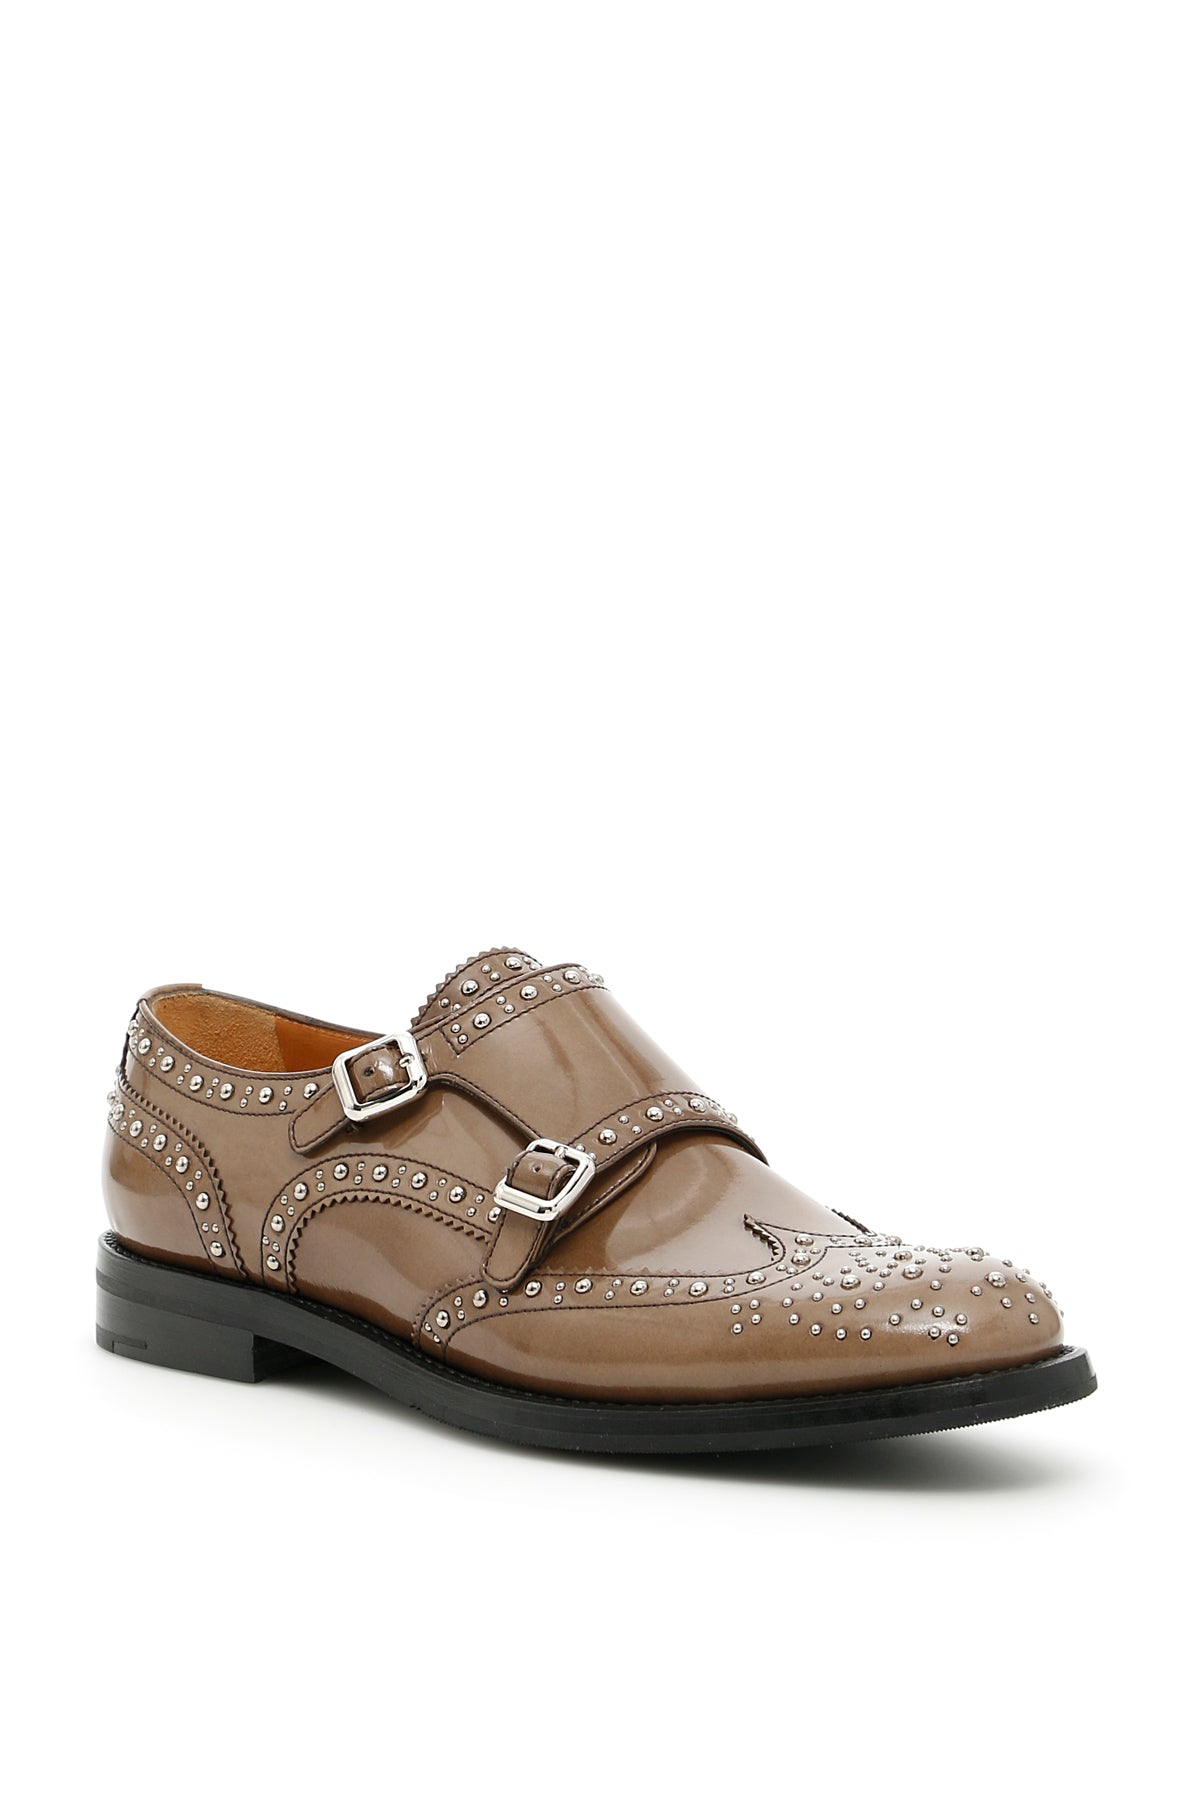 CHURCH'S LANA MONK BROGUES